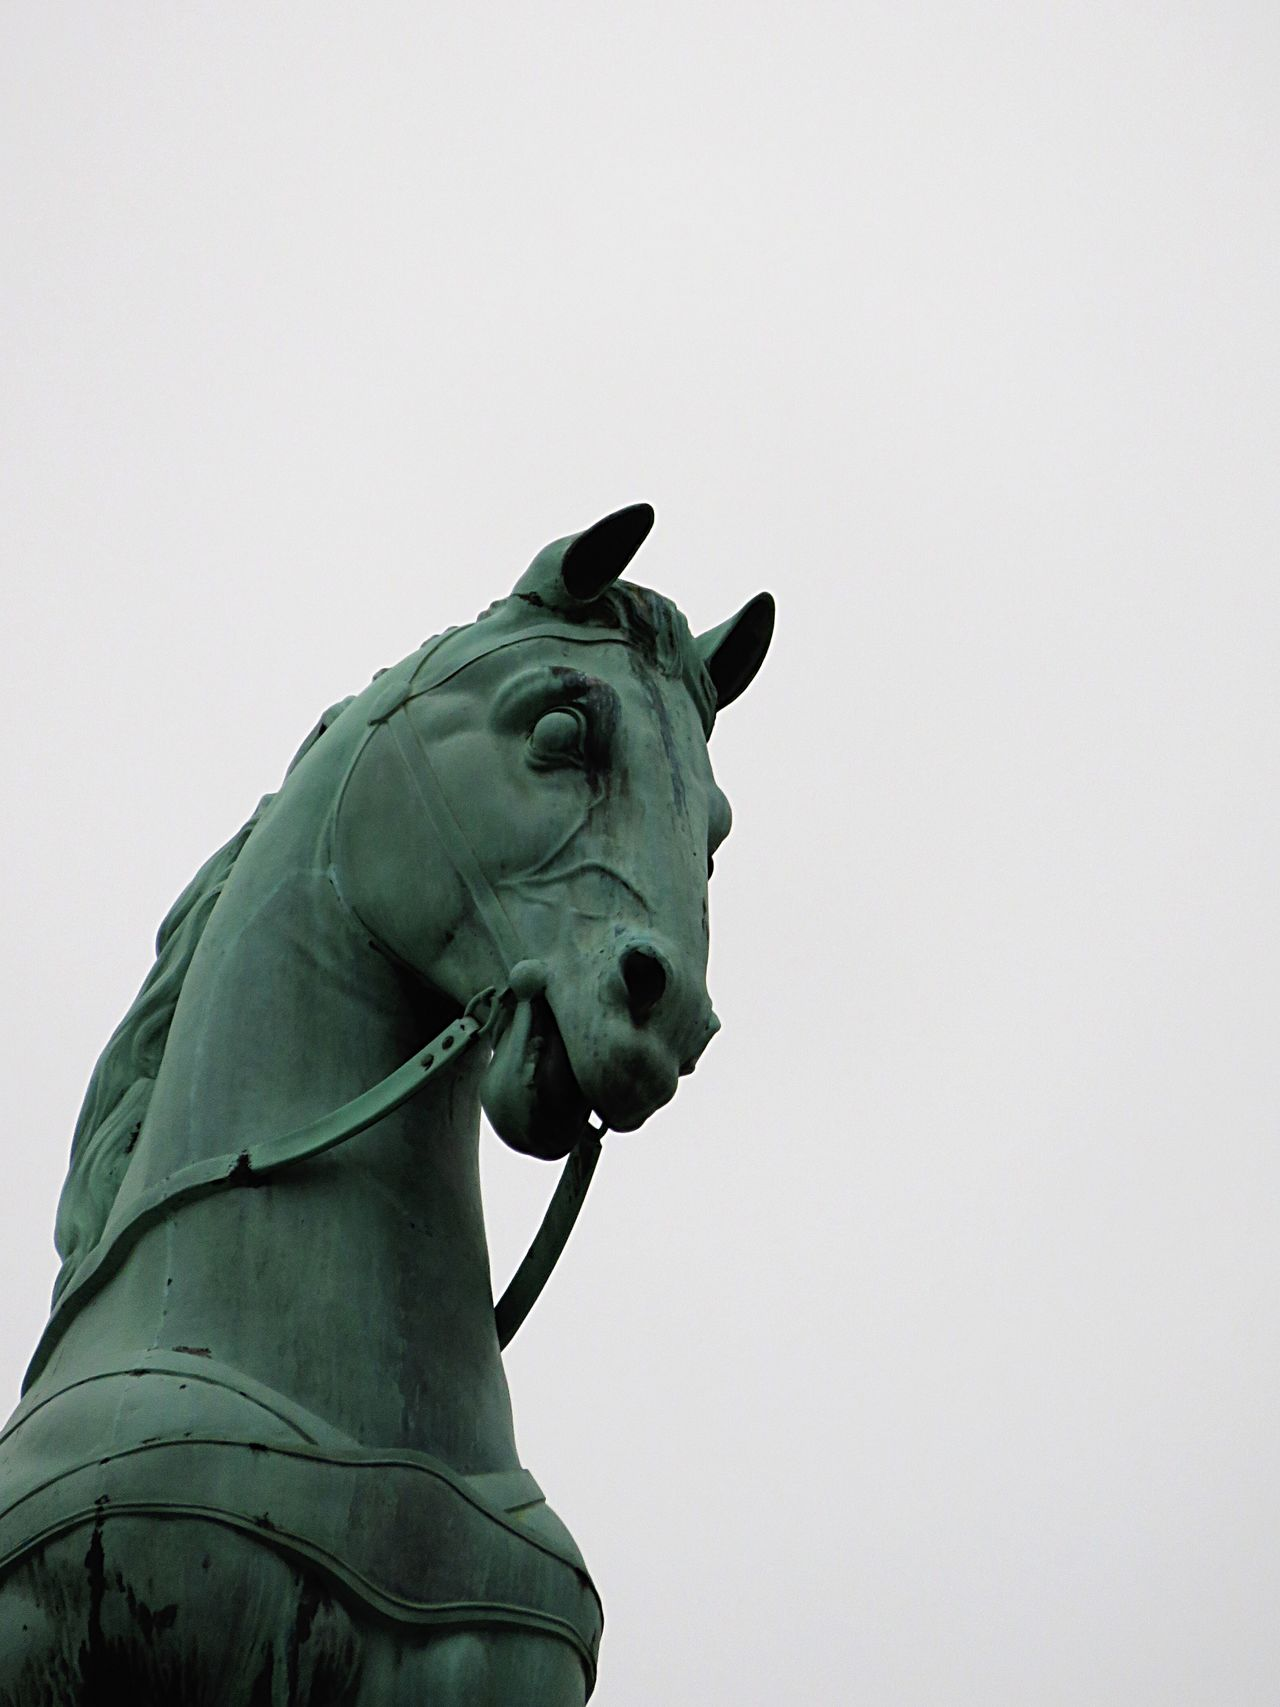 Horse Statue Historical Building Branderburgertor Berlin Traveling Sightseeing